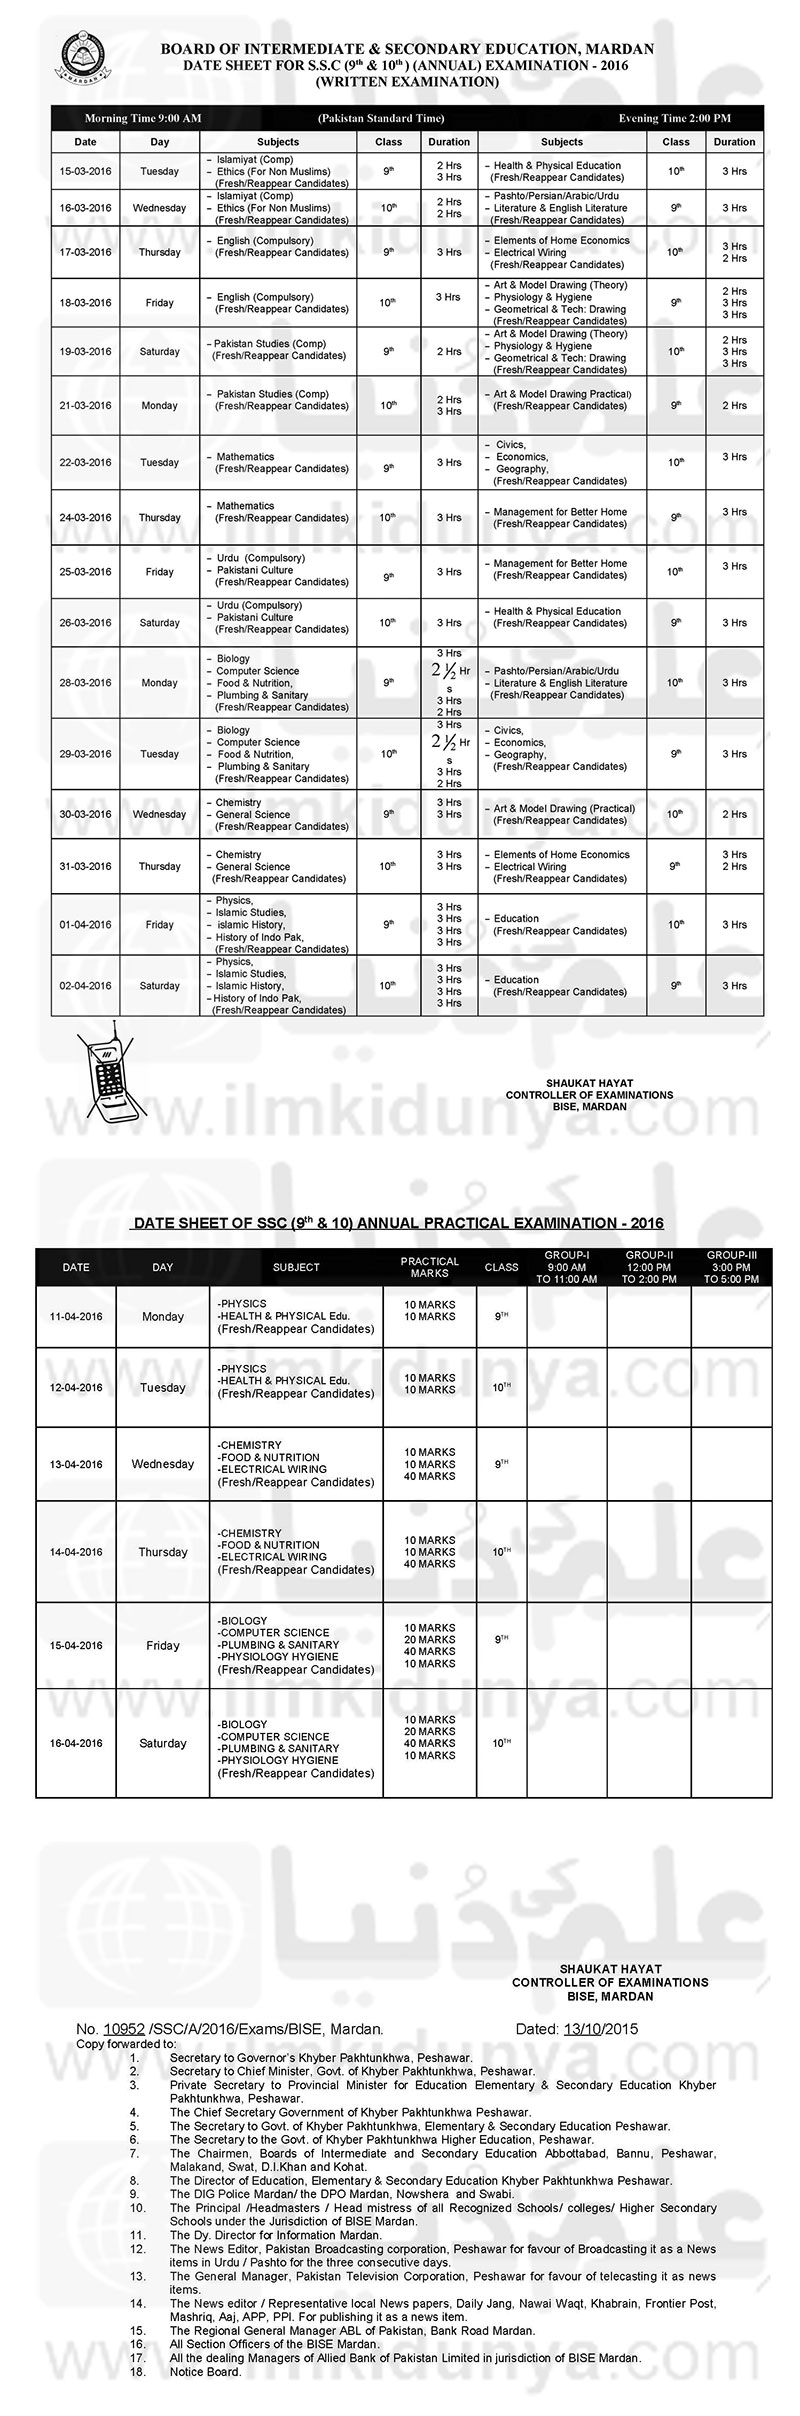 BISE Mardan Board SSC Date Sheets 2019 Part 1, 2